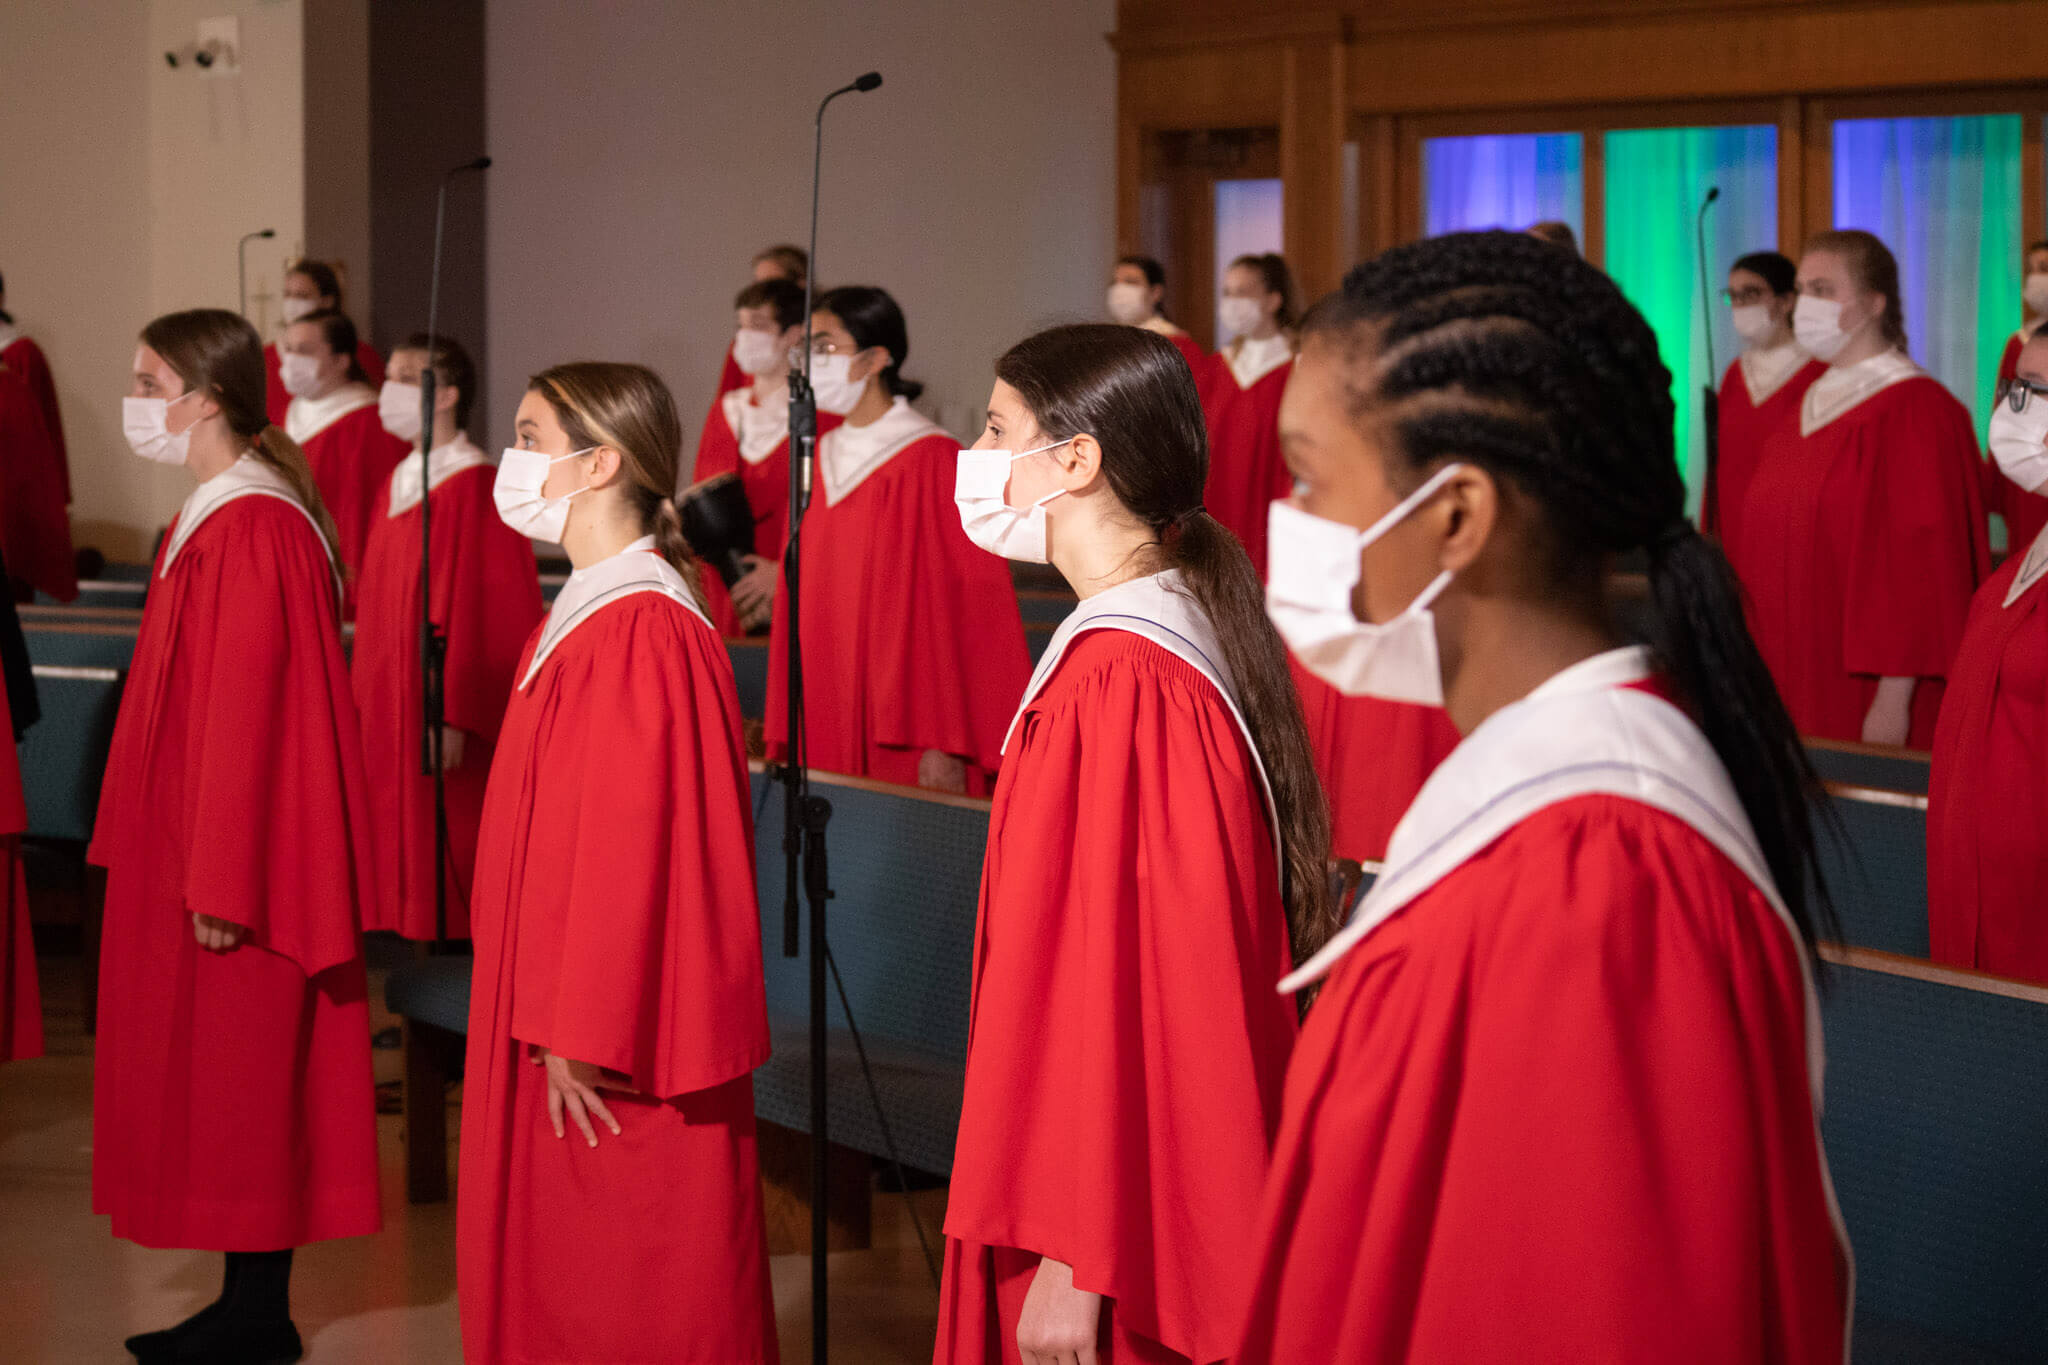 Choristers Spring Sing-Along Concert Photo